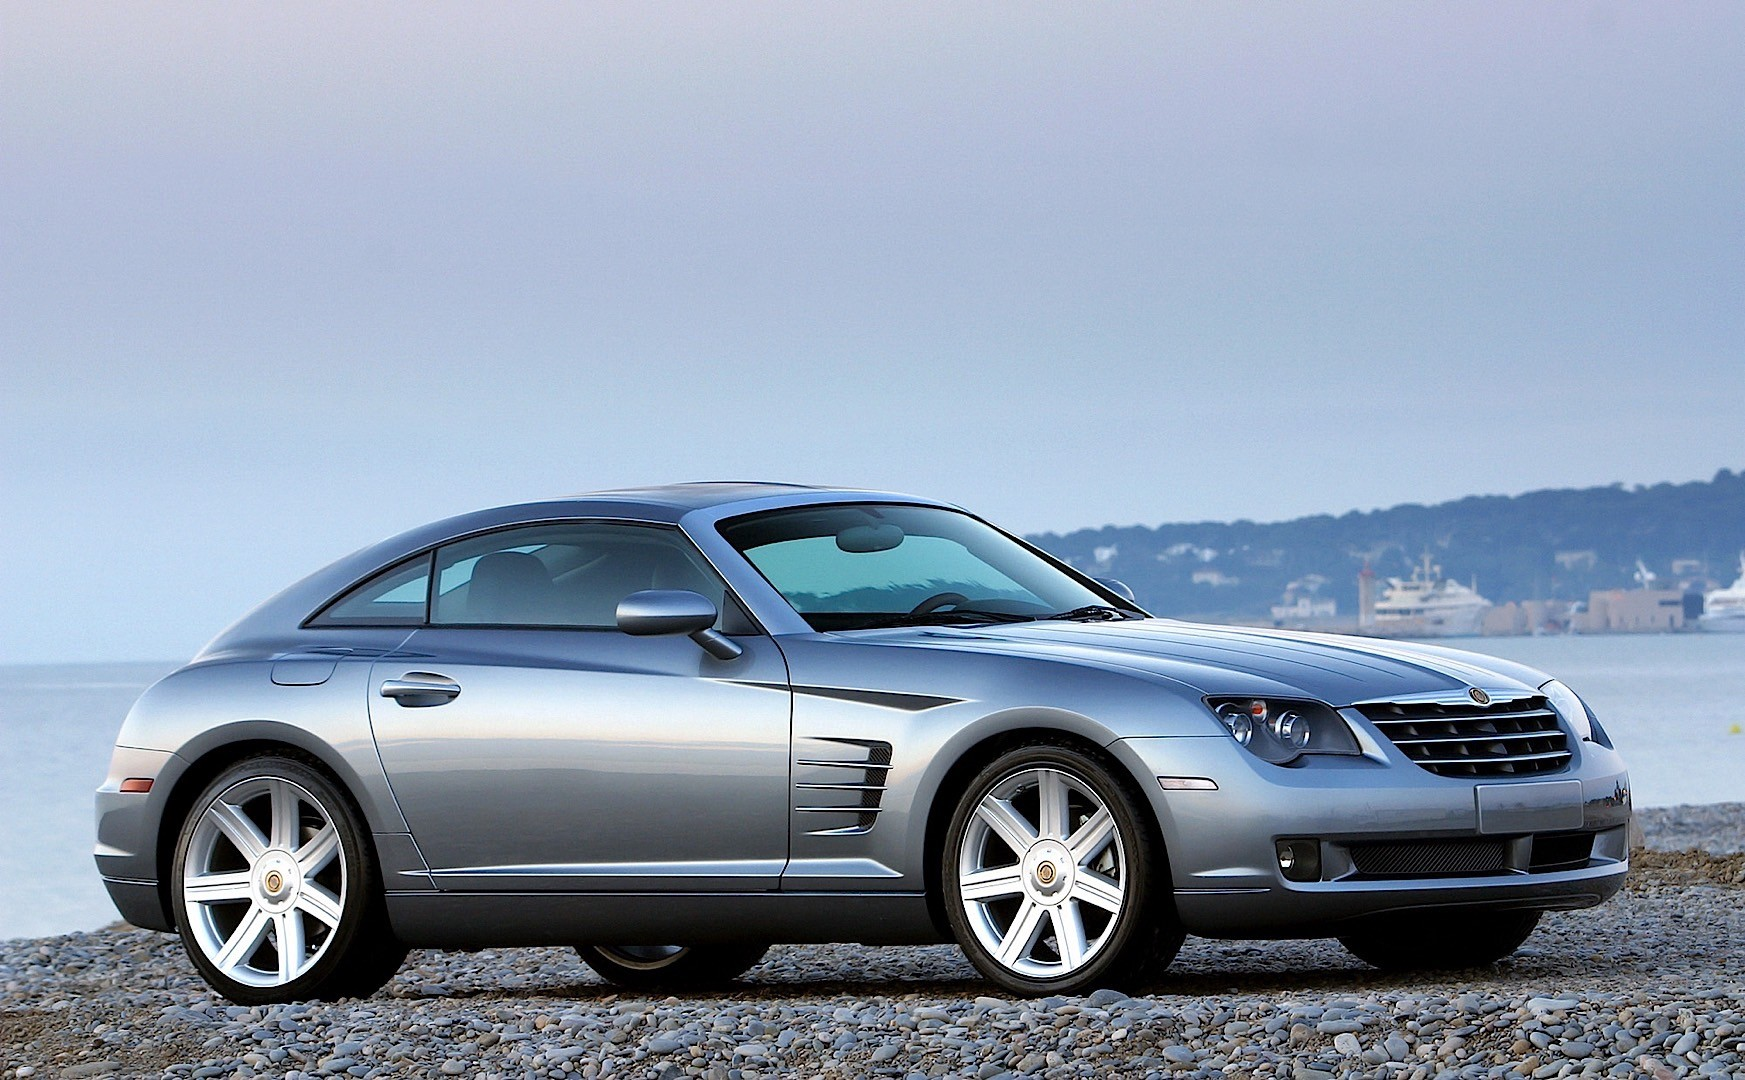 chrysler crossfire specs 2007  2008 autoevolution hp procurve 5700 manual hp 5600 manual